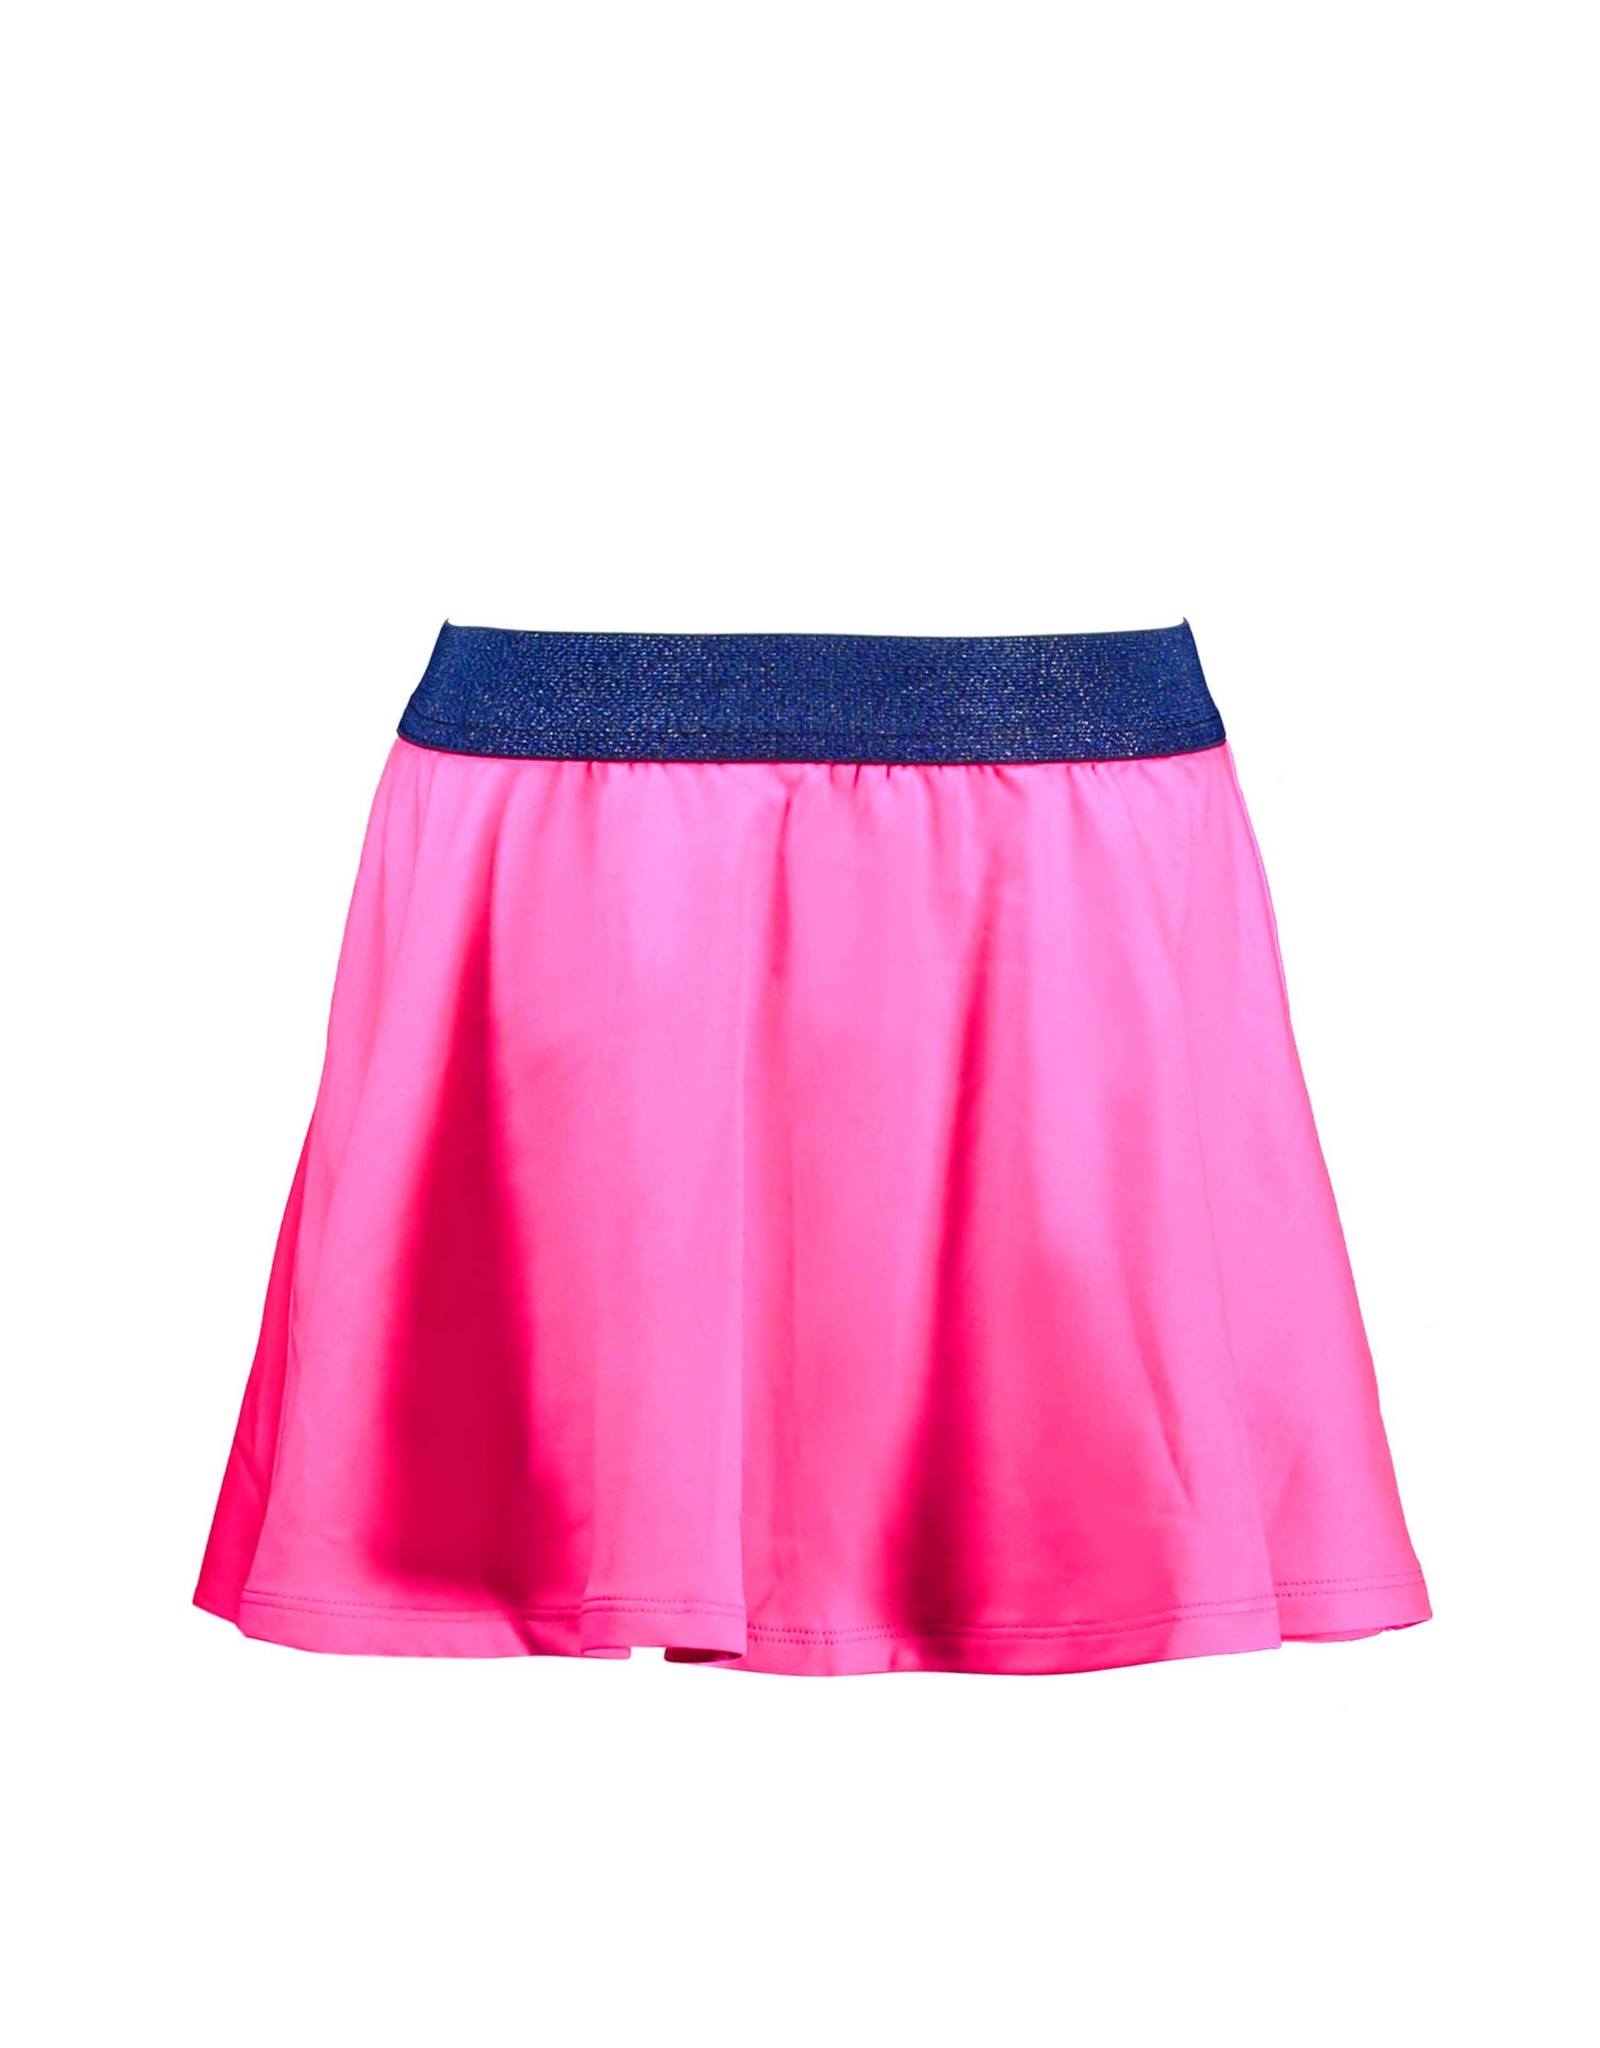 B-Nosy Girls heavy jersey skirt, Knock out pink